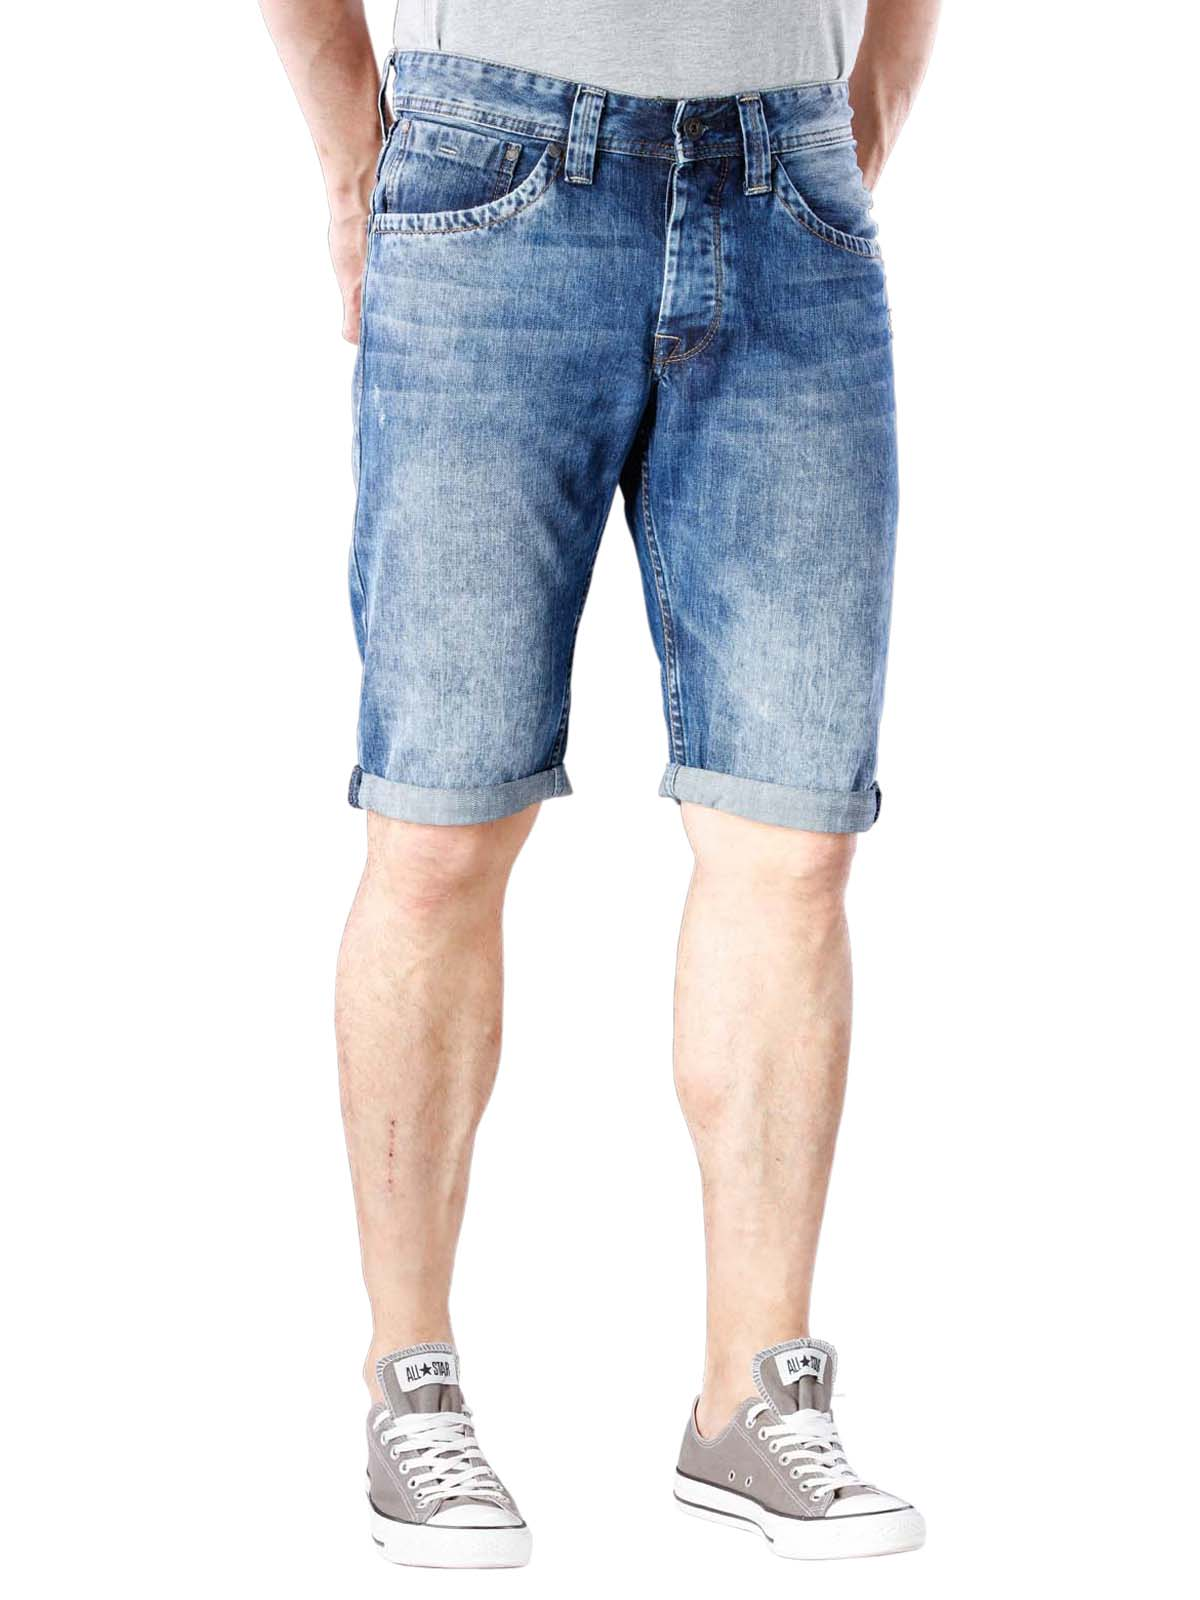 Pepe Jeans Cash Short denim blue Pepe Jeans Men's Shorts | Free Shipping on  BEBASIC.CH - SIMPLY LOOK GOOD